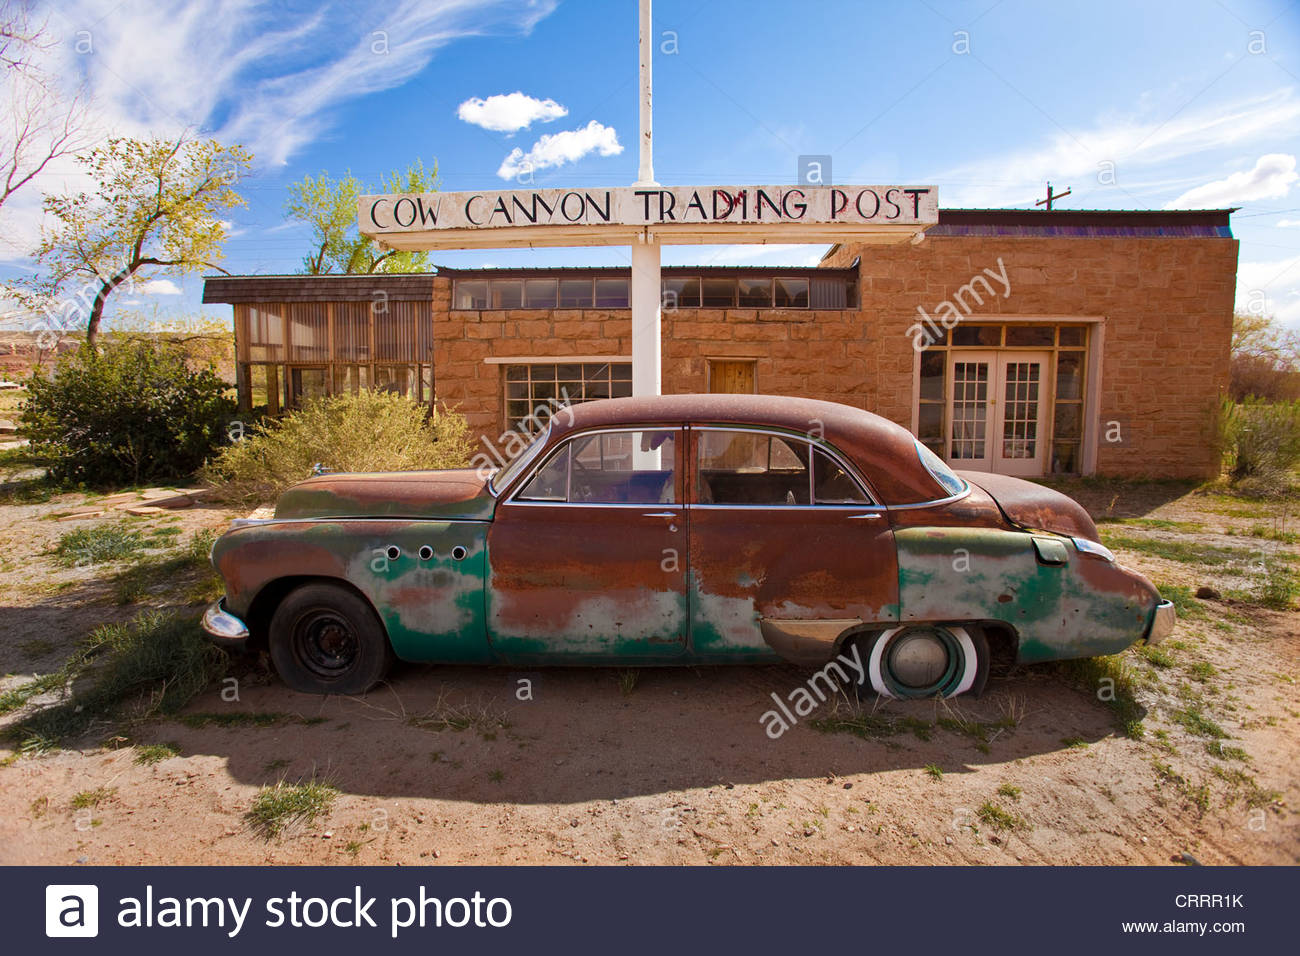 Cow Canyon Trading Post and Restaurant, Bluff, Utah - Stock Image